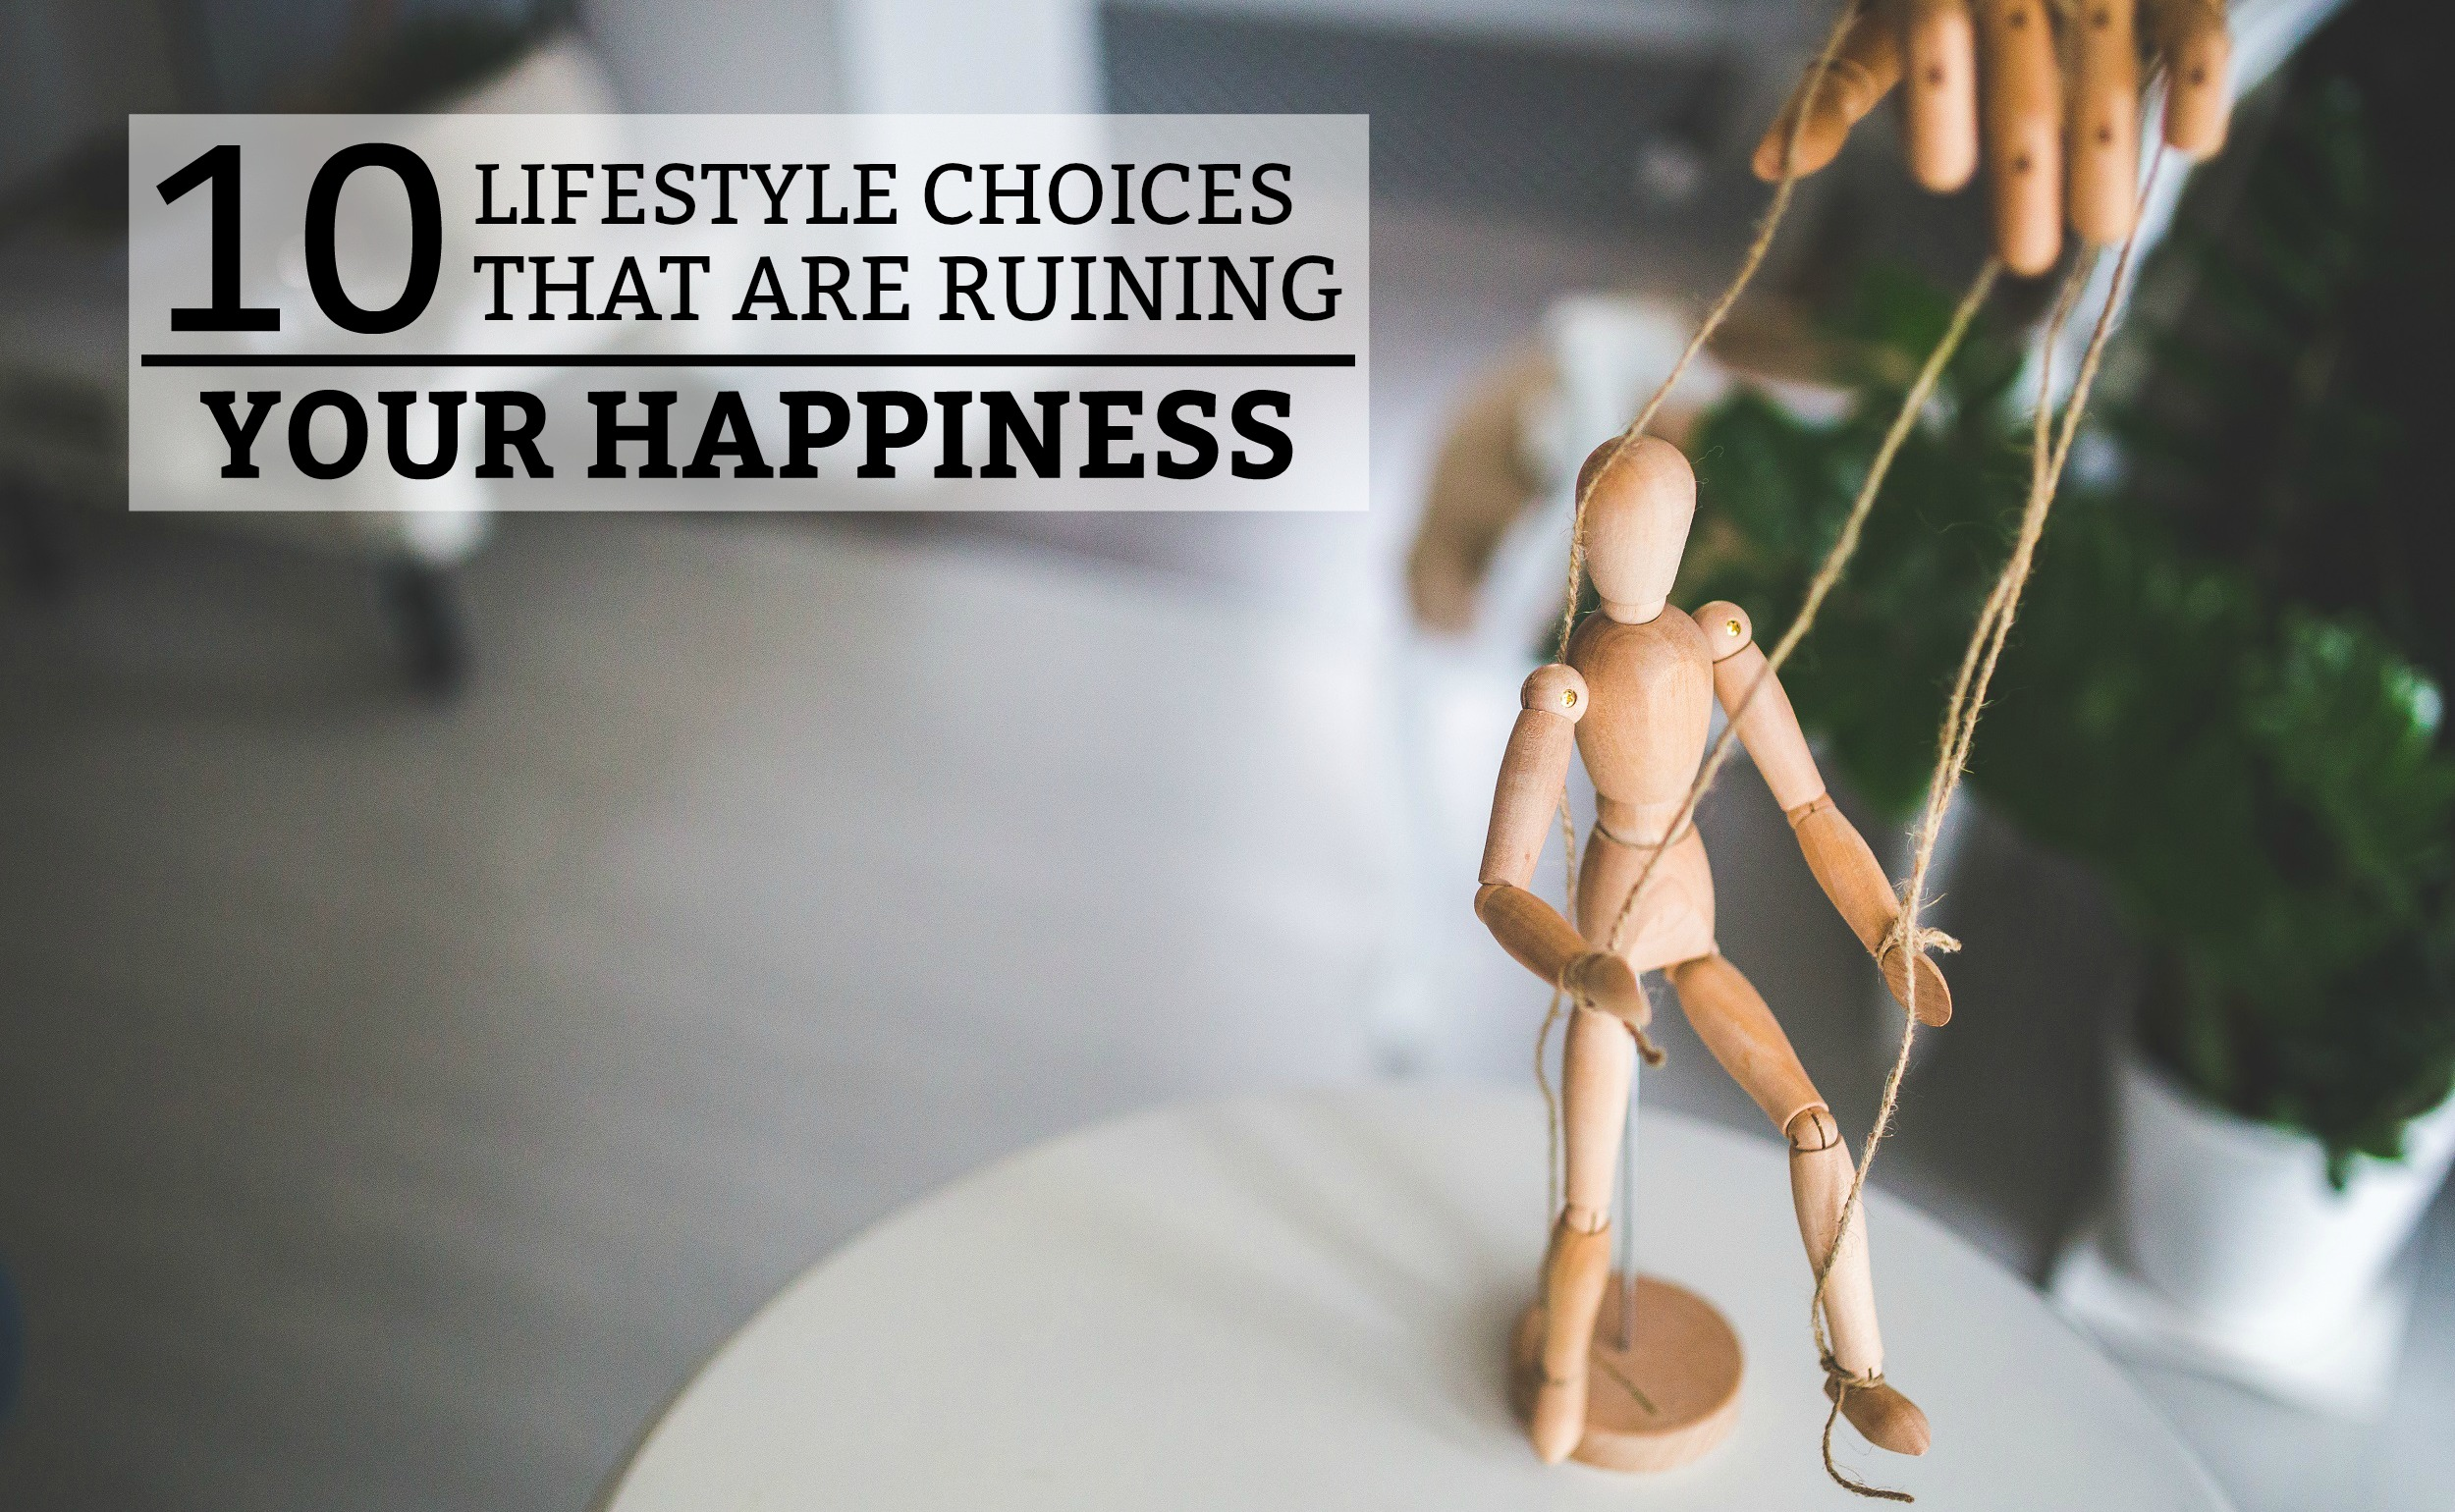 10 Lifestyle Choices that are Ruining Your Happiness - a practical guide on the habits that are destroying your joy and how to fix them. www.tradingaverage.com